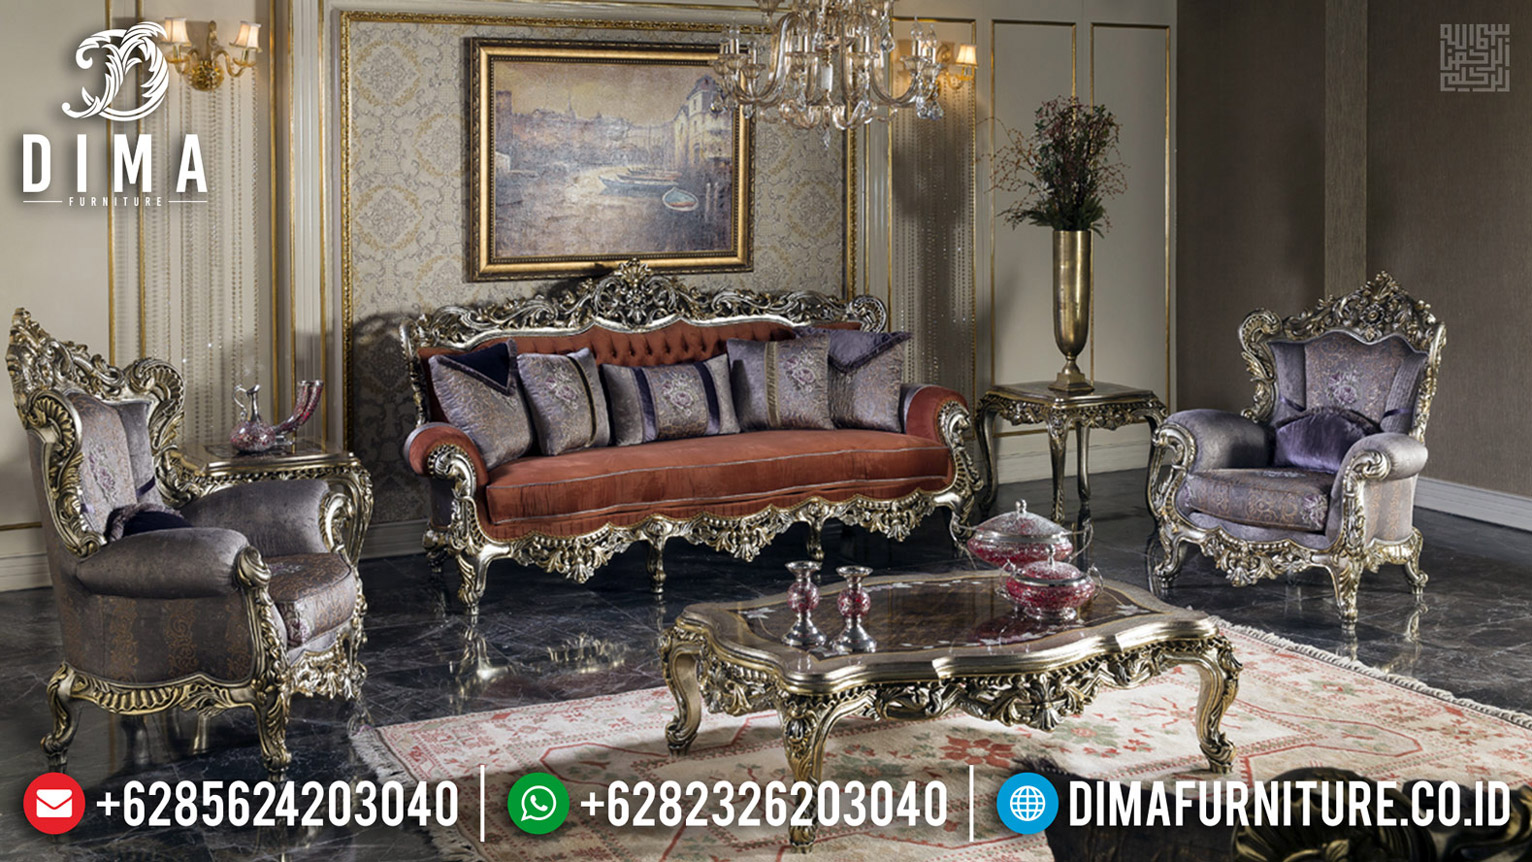 Furniture Jepara Sofa Tamu Mewah Luxury Classic New Design Get Sale MMJ-0597